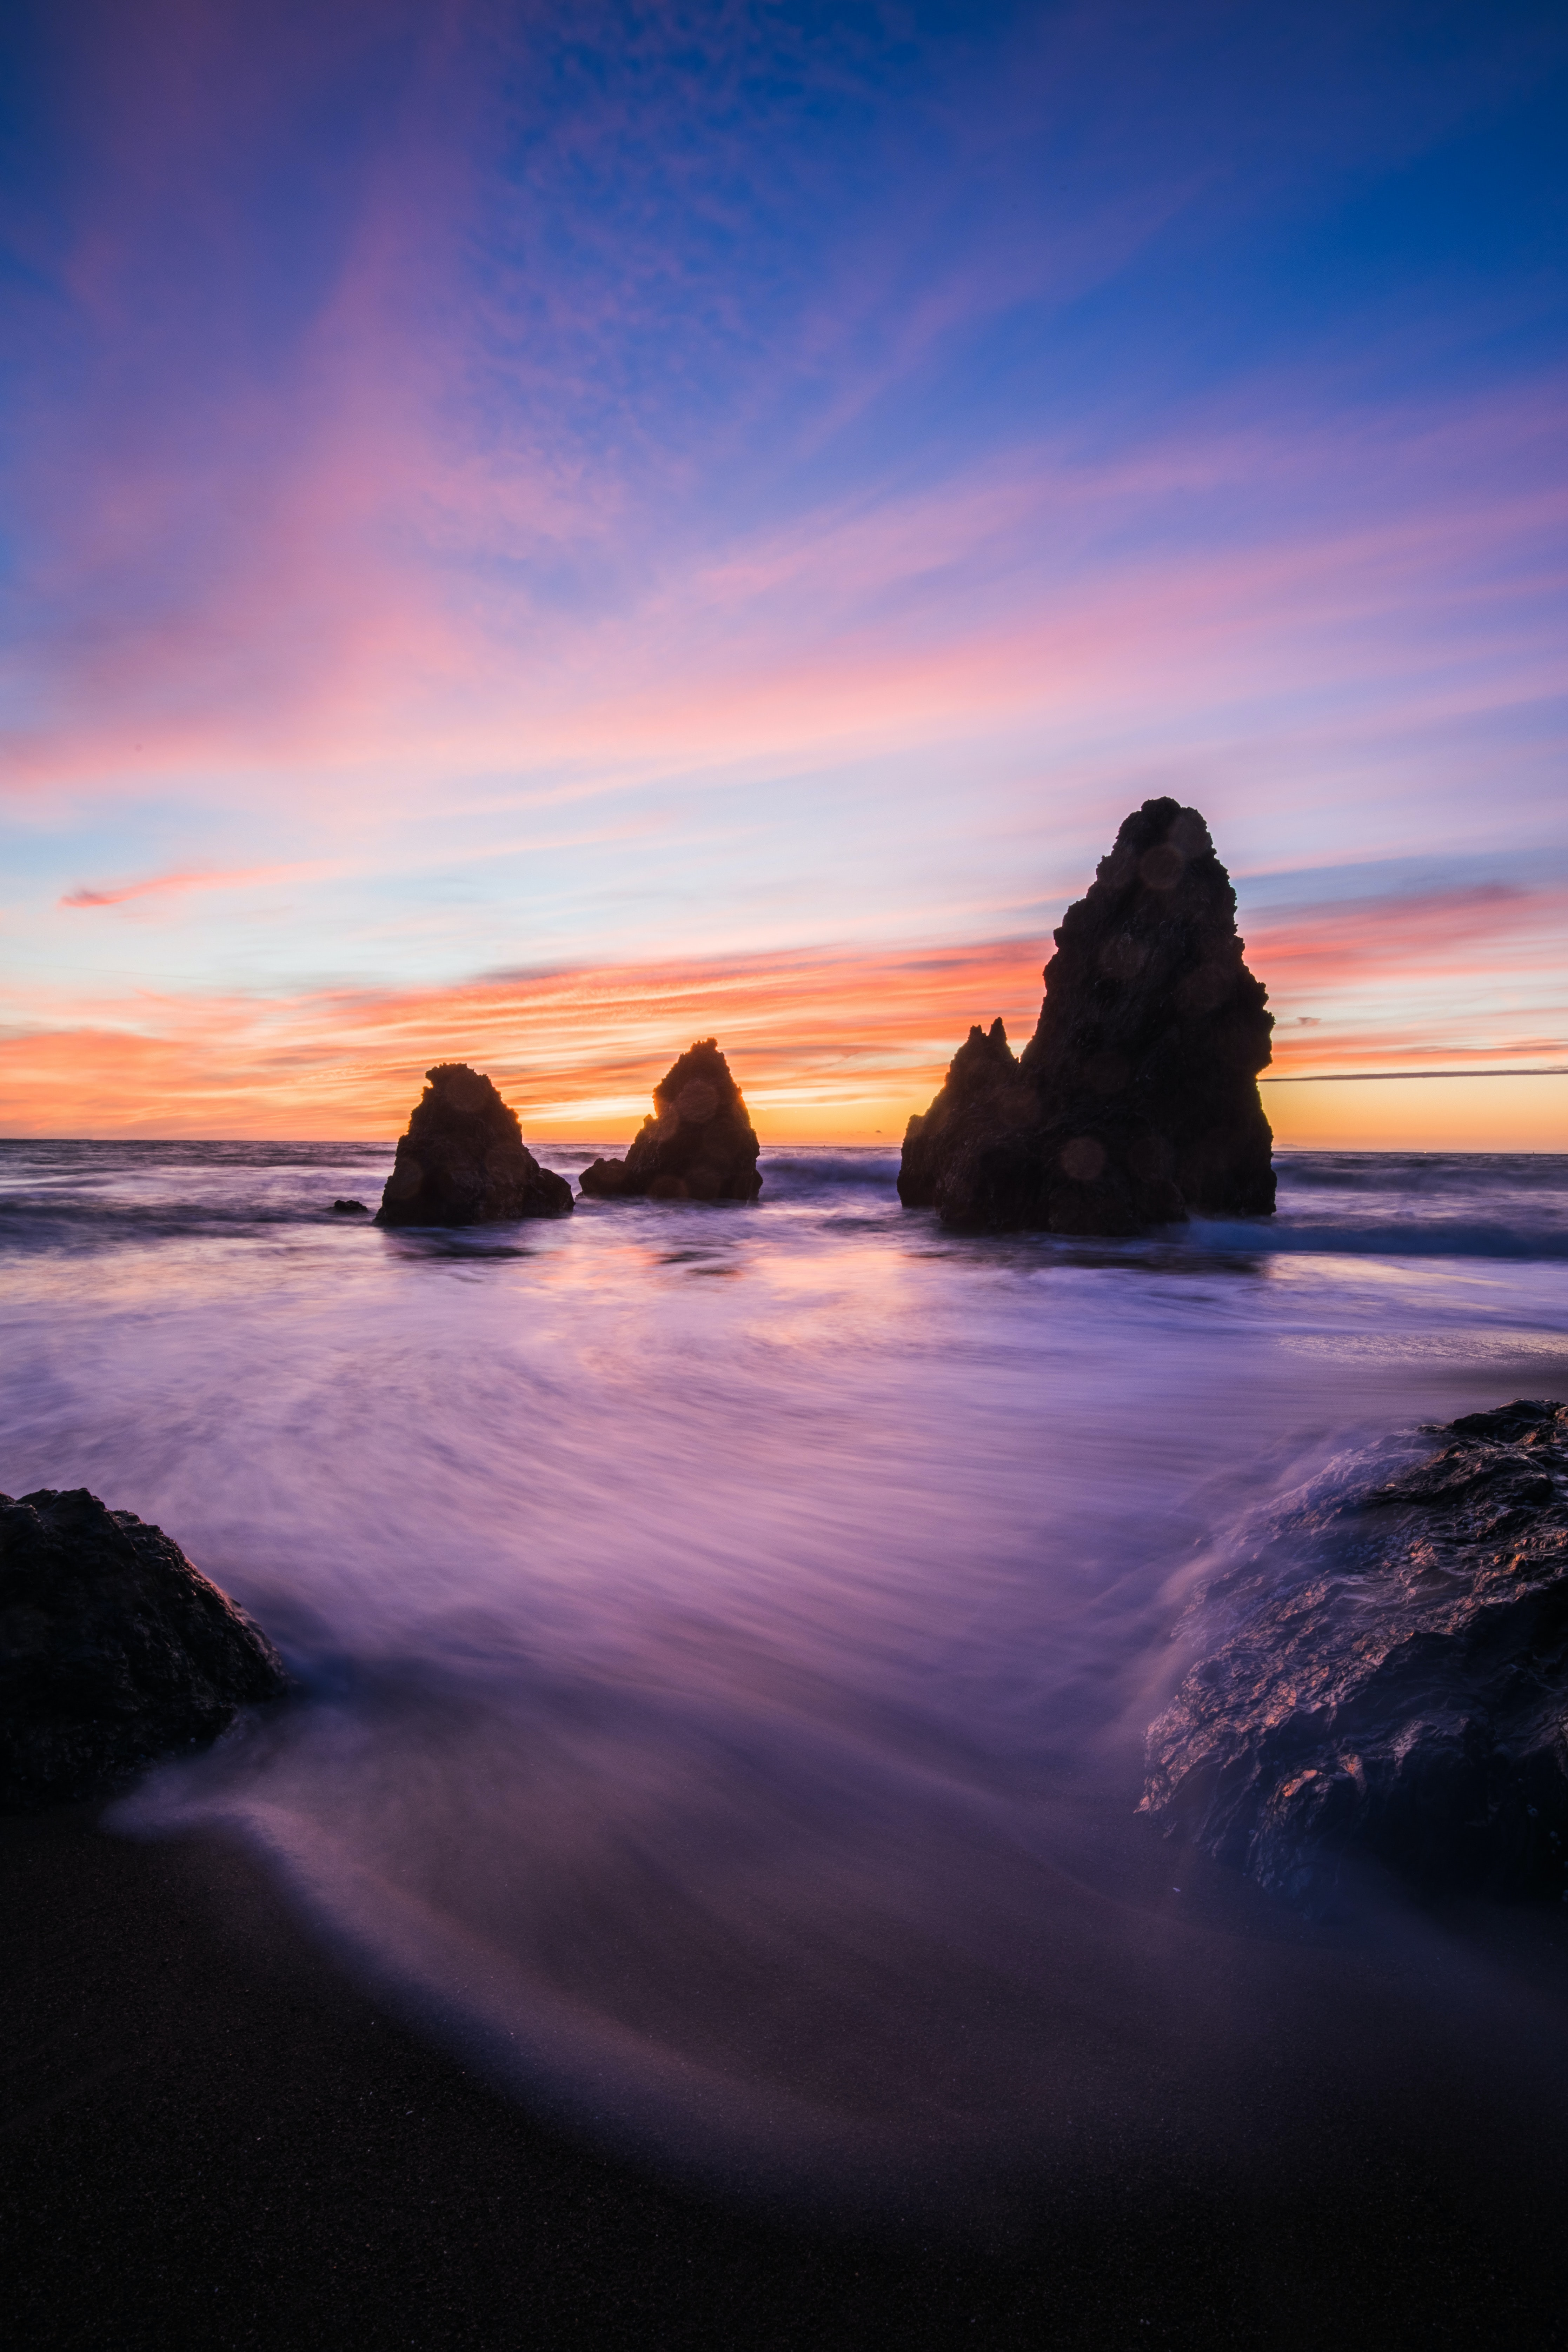 rock formations in body of water at blue hour